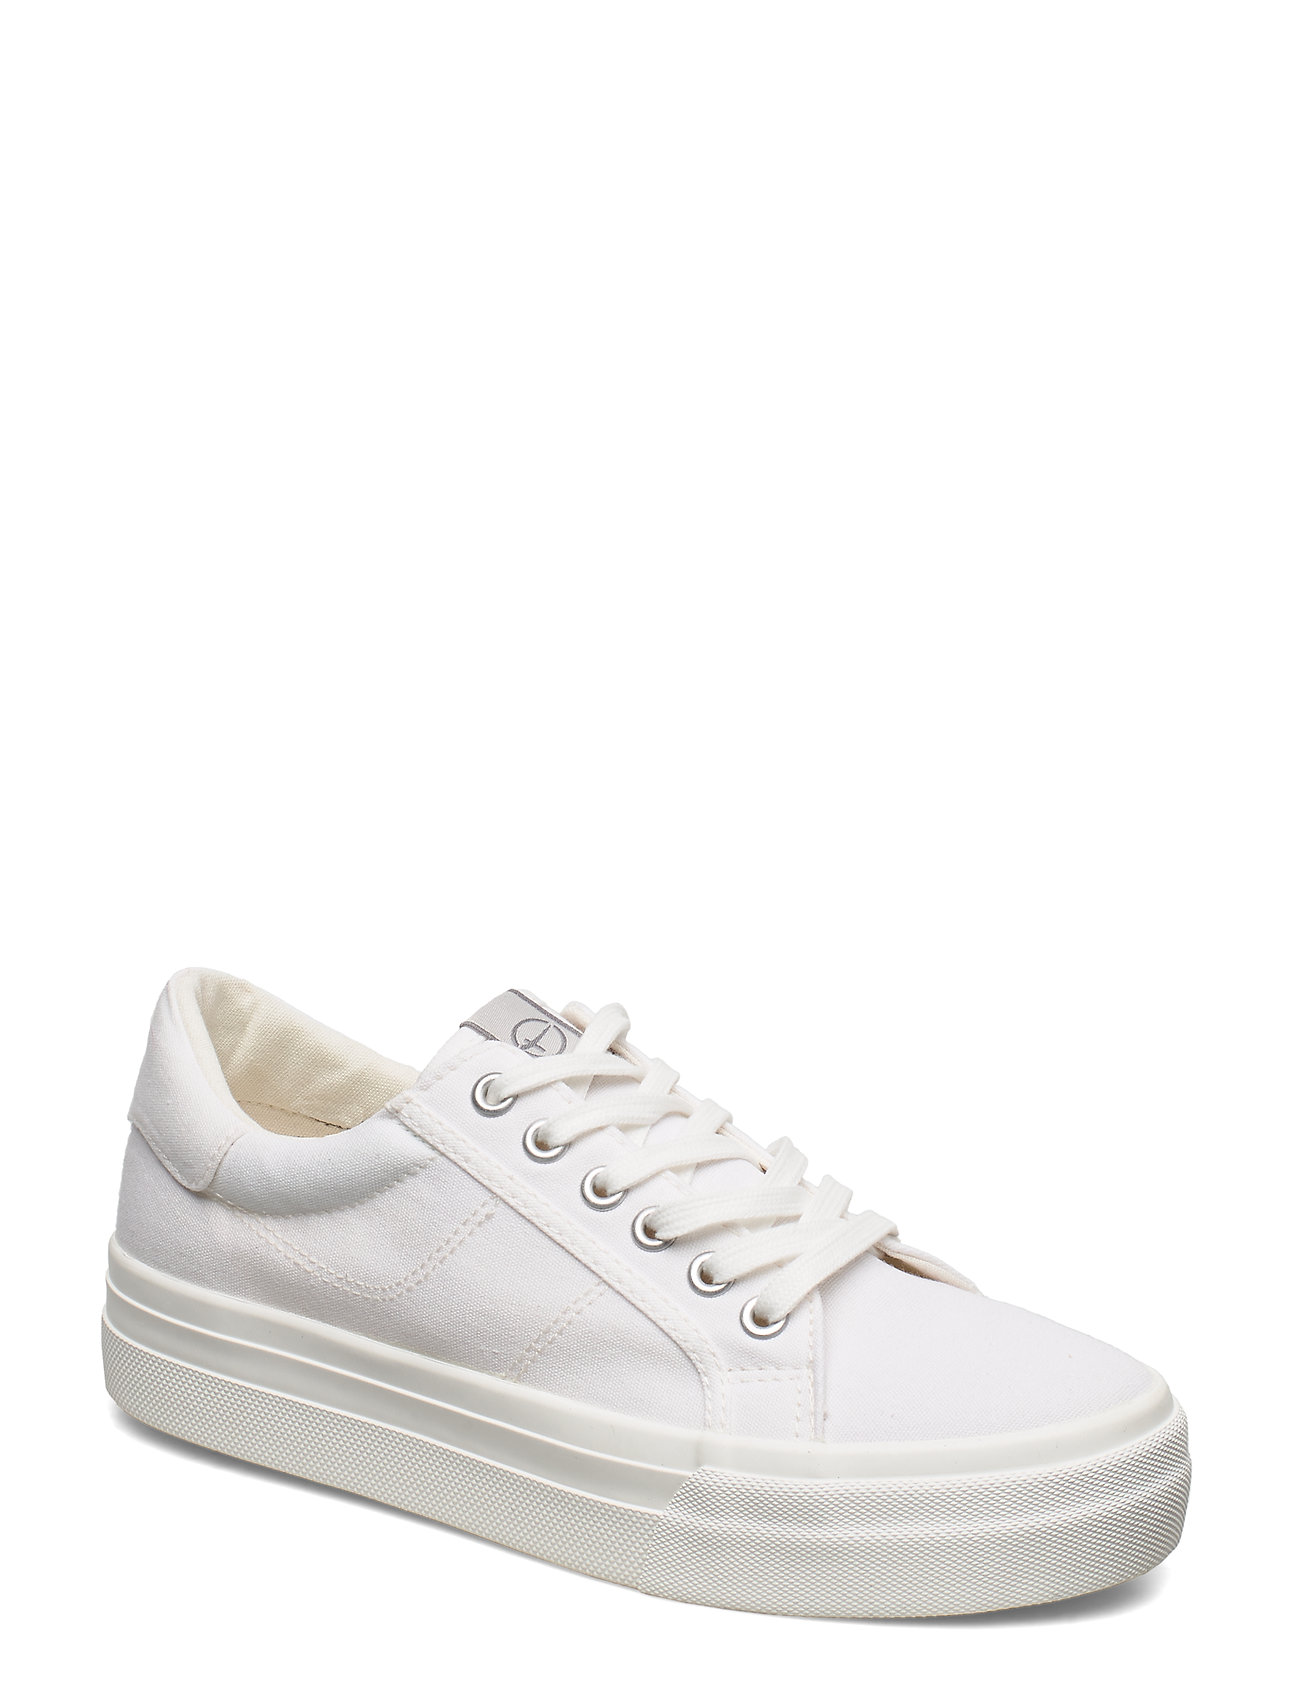 Tamaris Woms Lace-up - WHITE